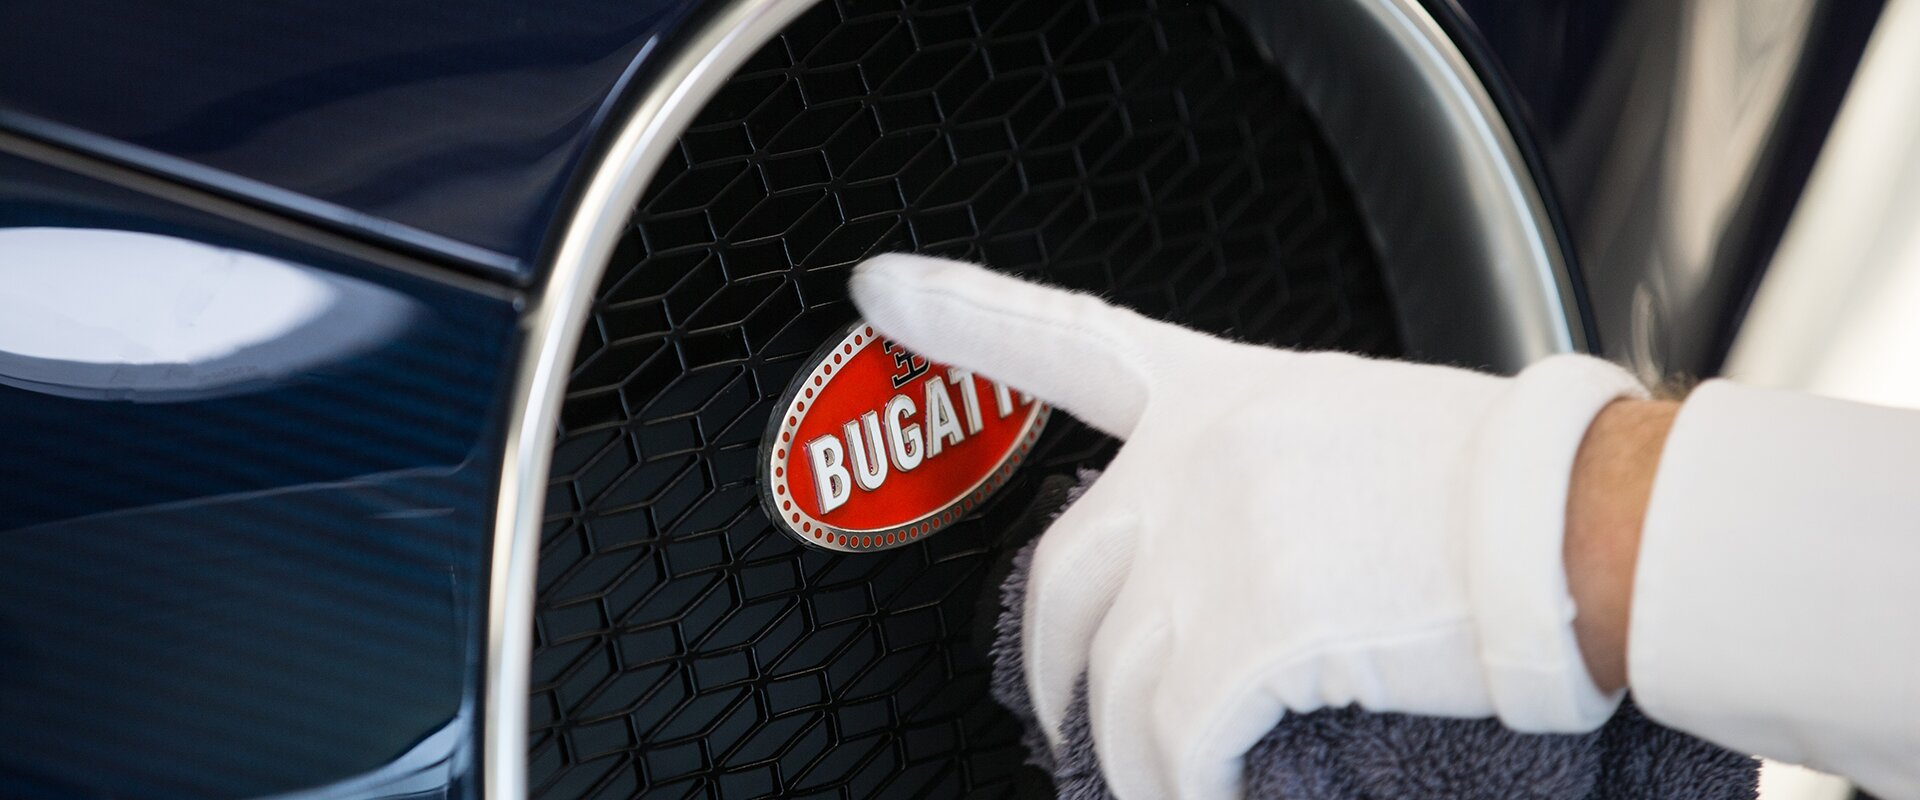 40,000 days of Bugatti